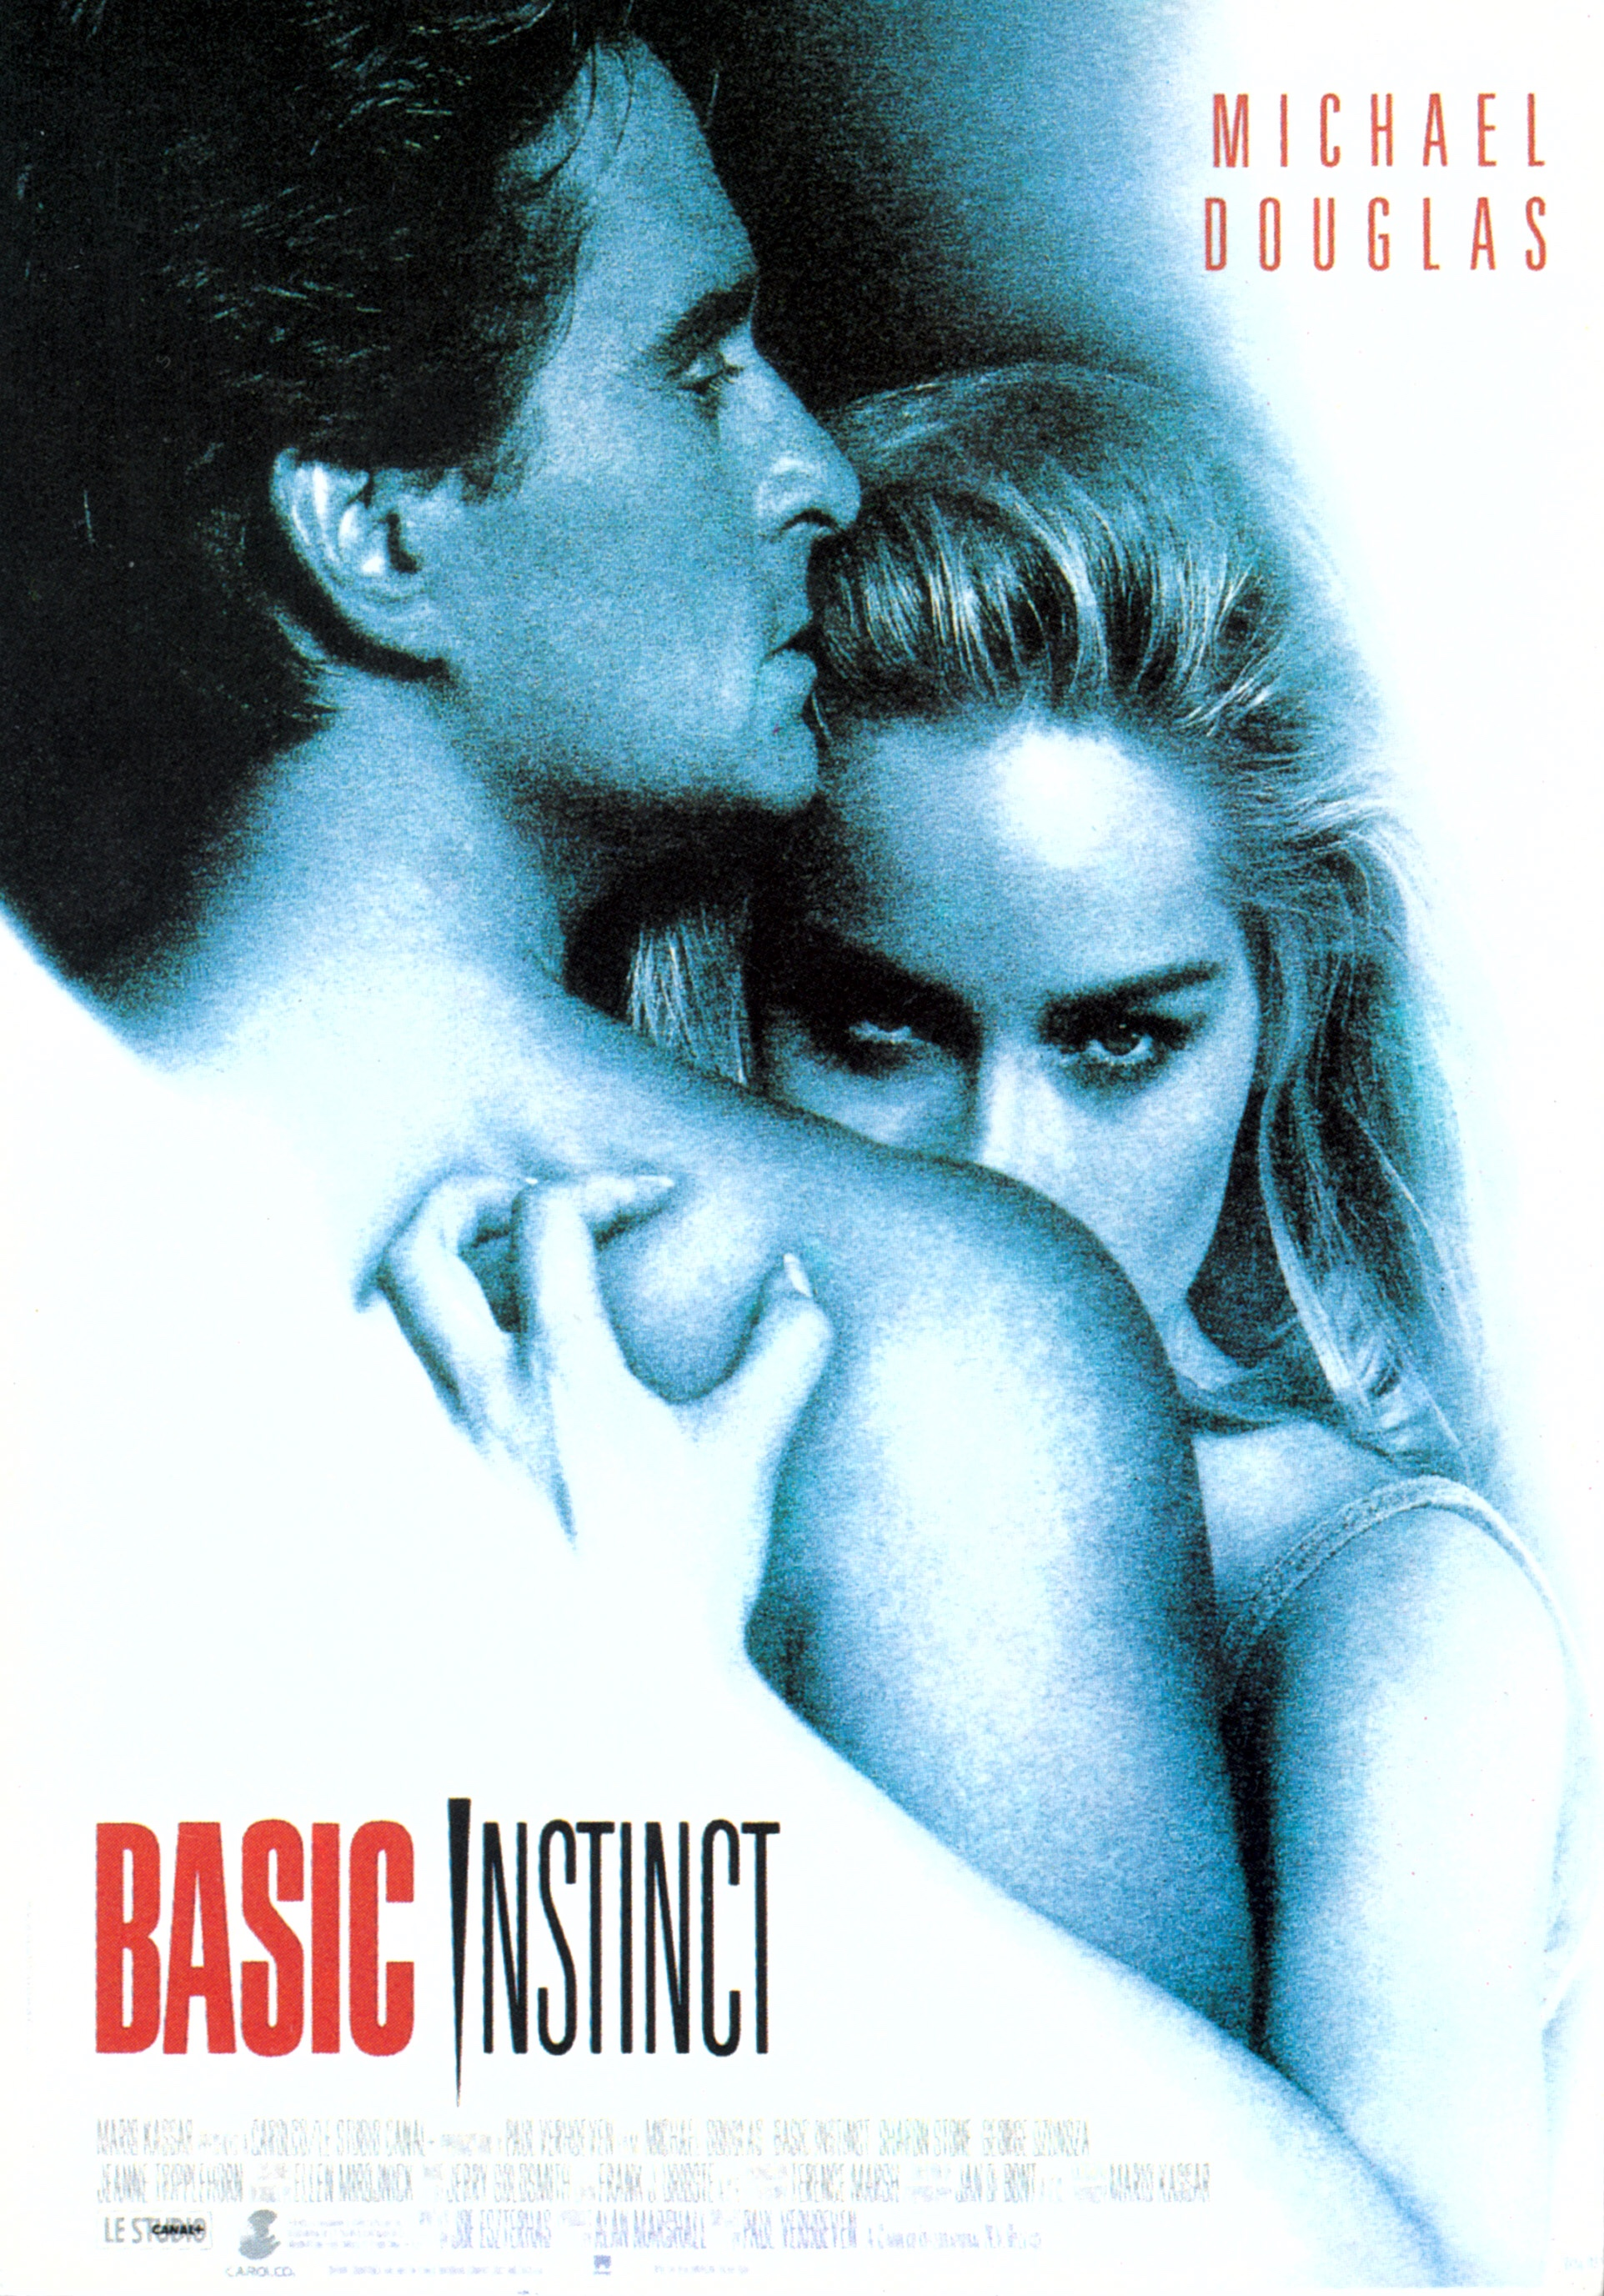 The poster for Basic Instinct - Michael Douglas looking over to the right with Sharon Stone glaring over his shoulder